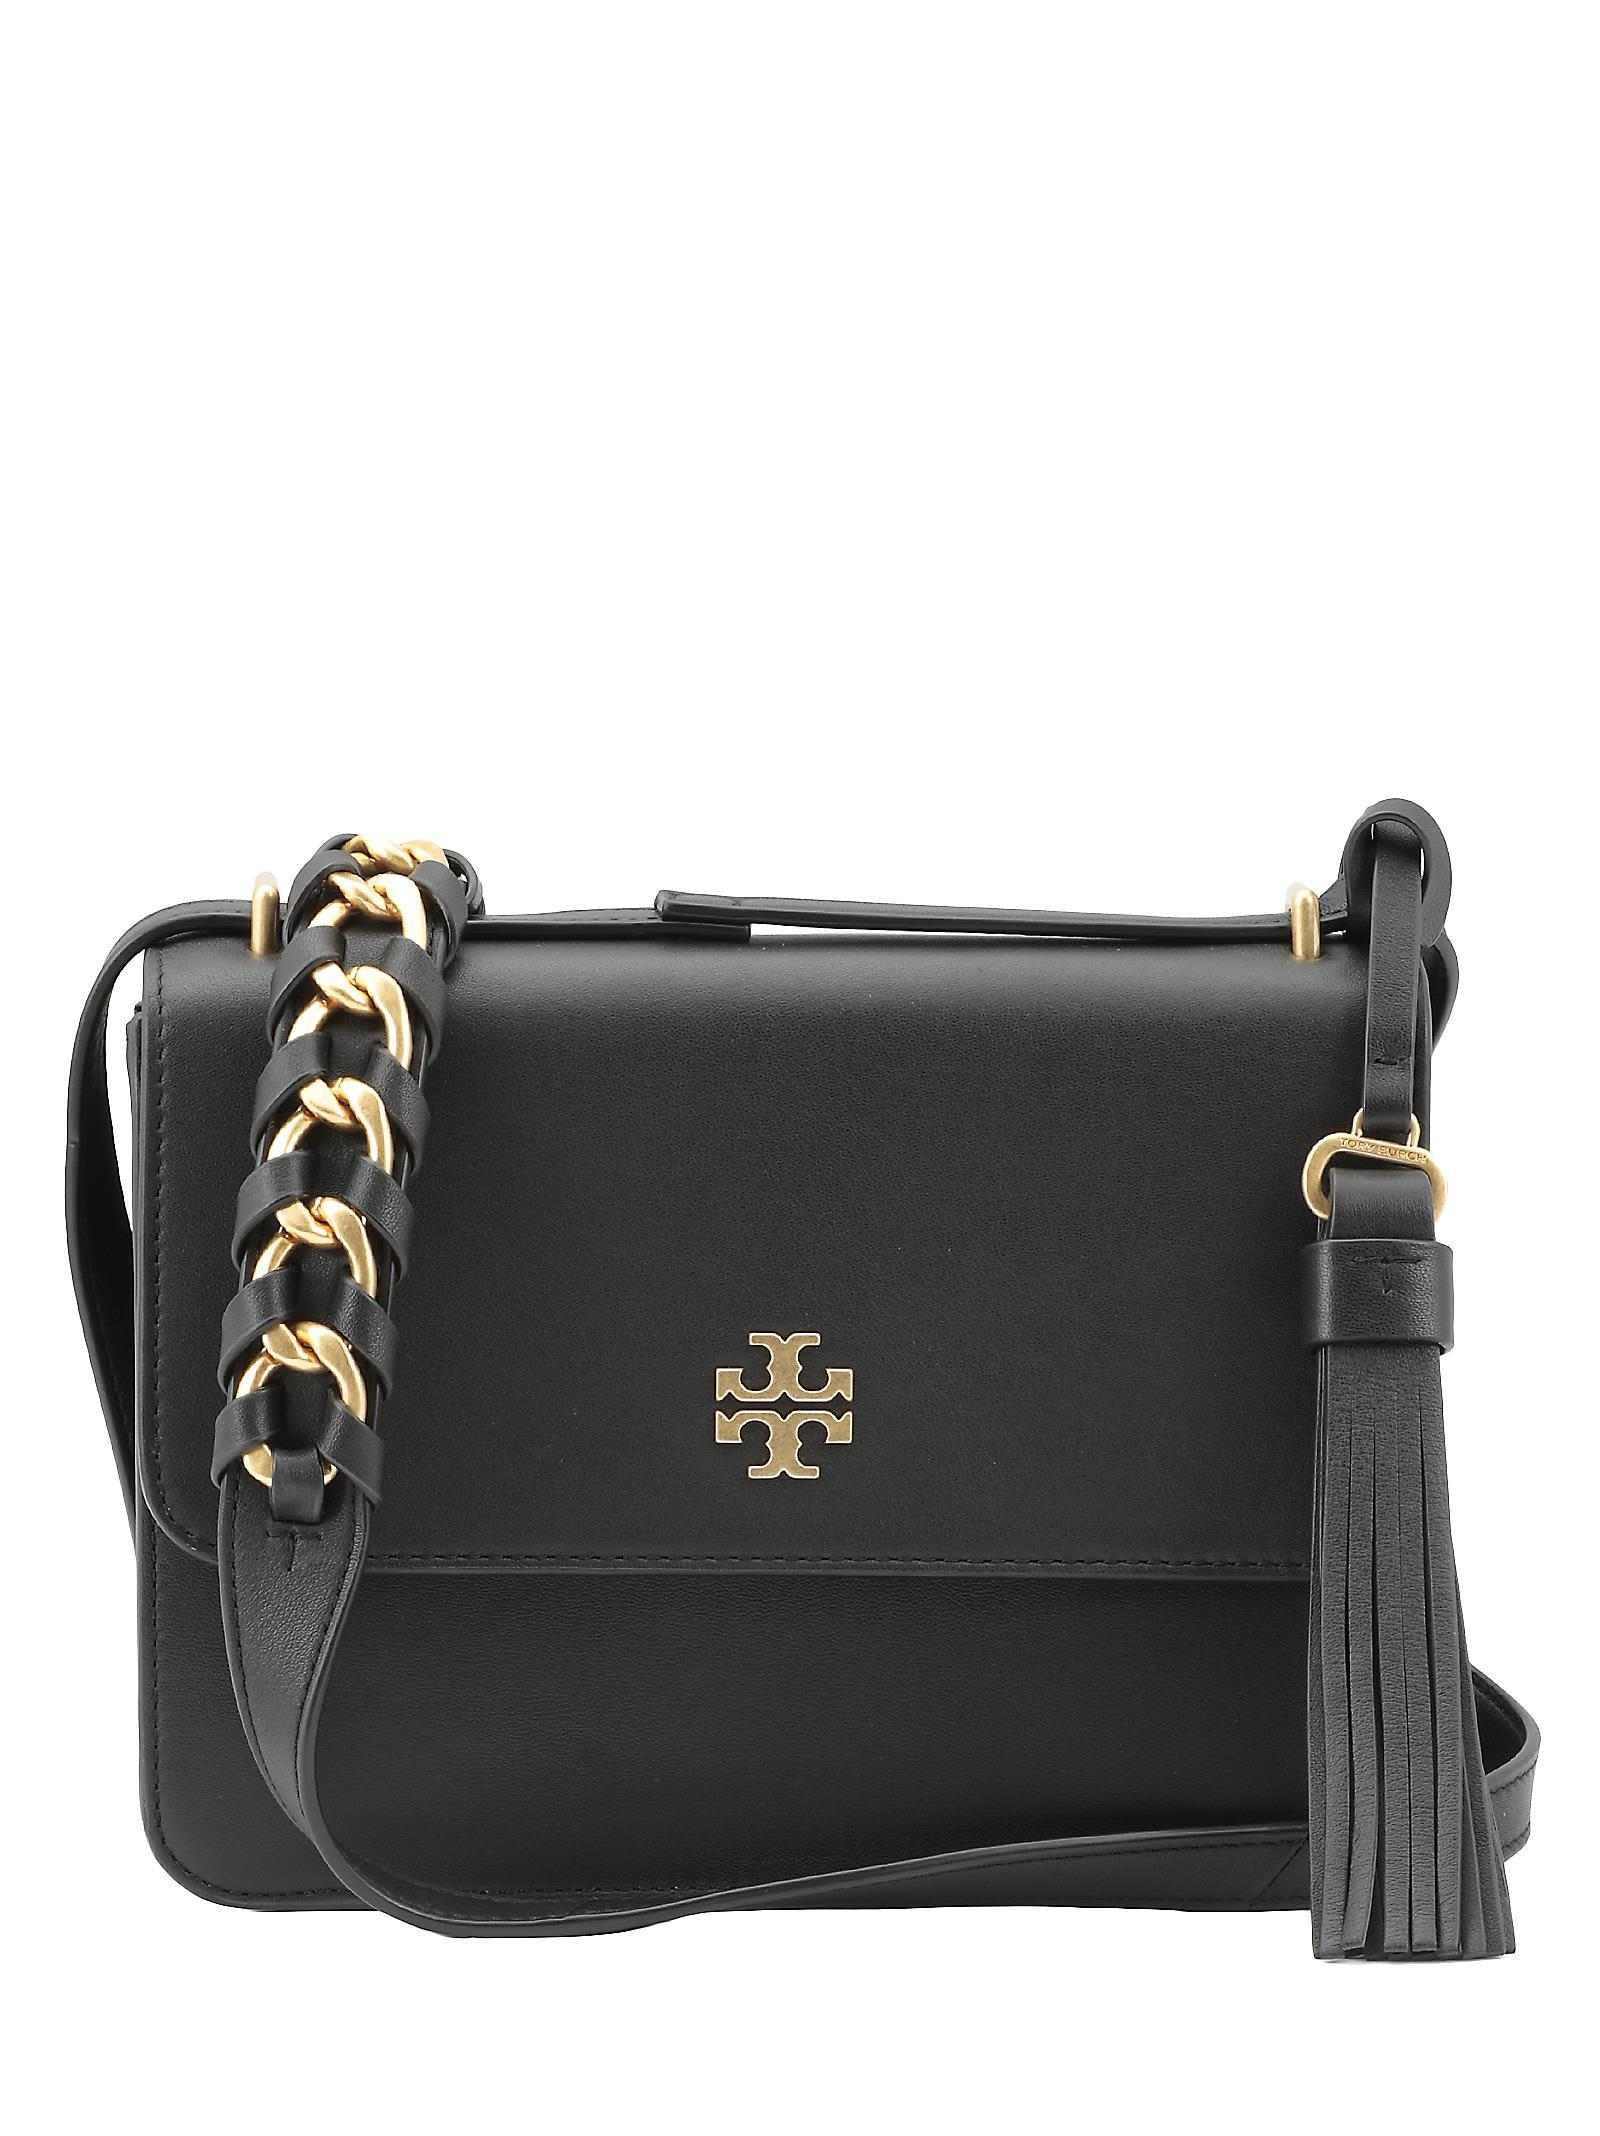 b7791322fb90 Tory Burch Brooke Shoulder Bag In Black